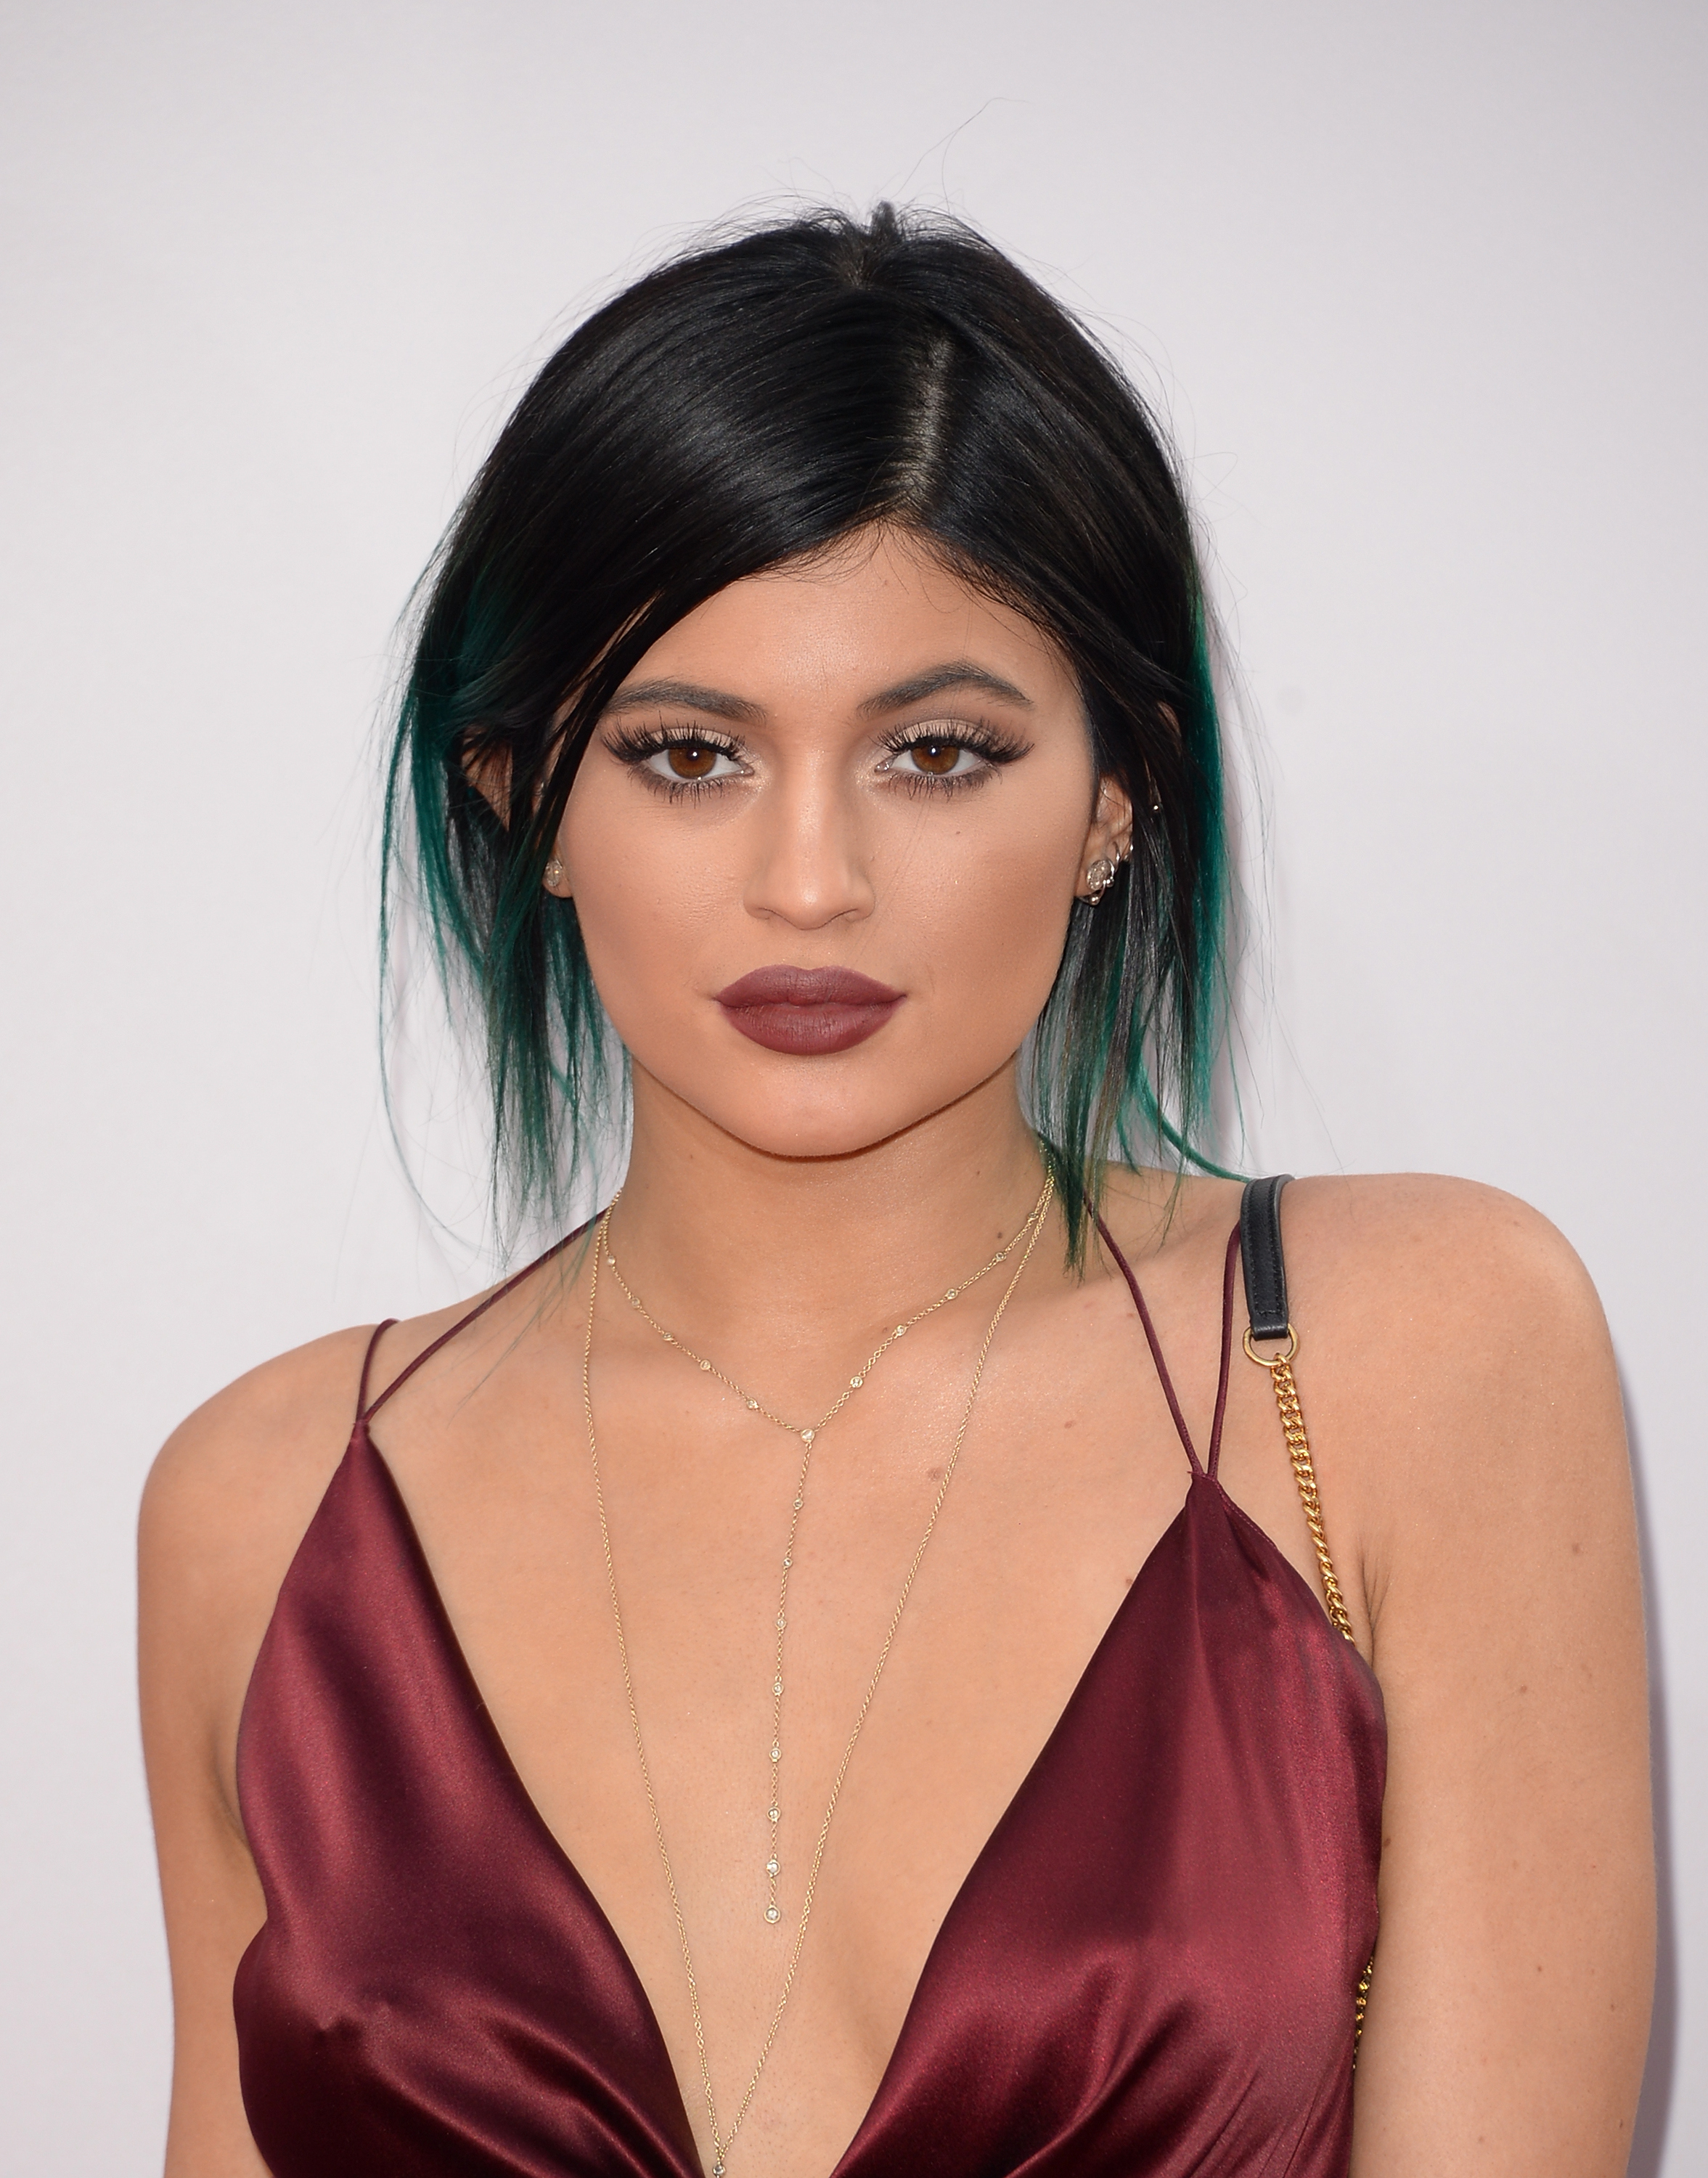 13 Kylie Jenner Teal Hair Throwbacks That Will Make You Miss Her